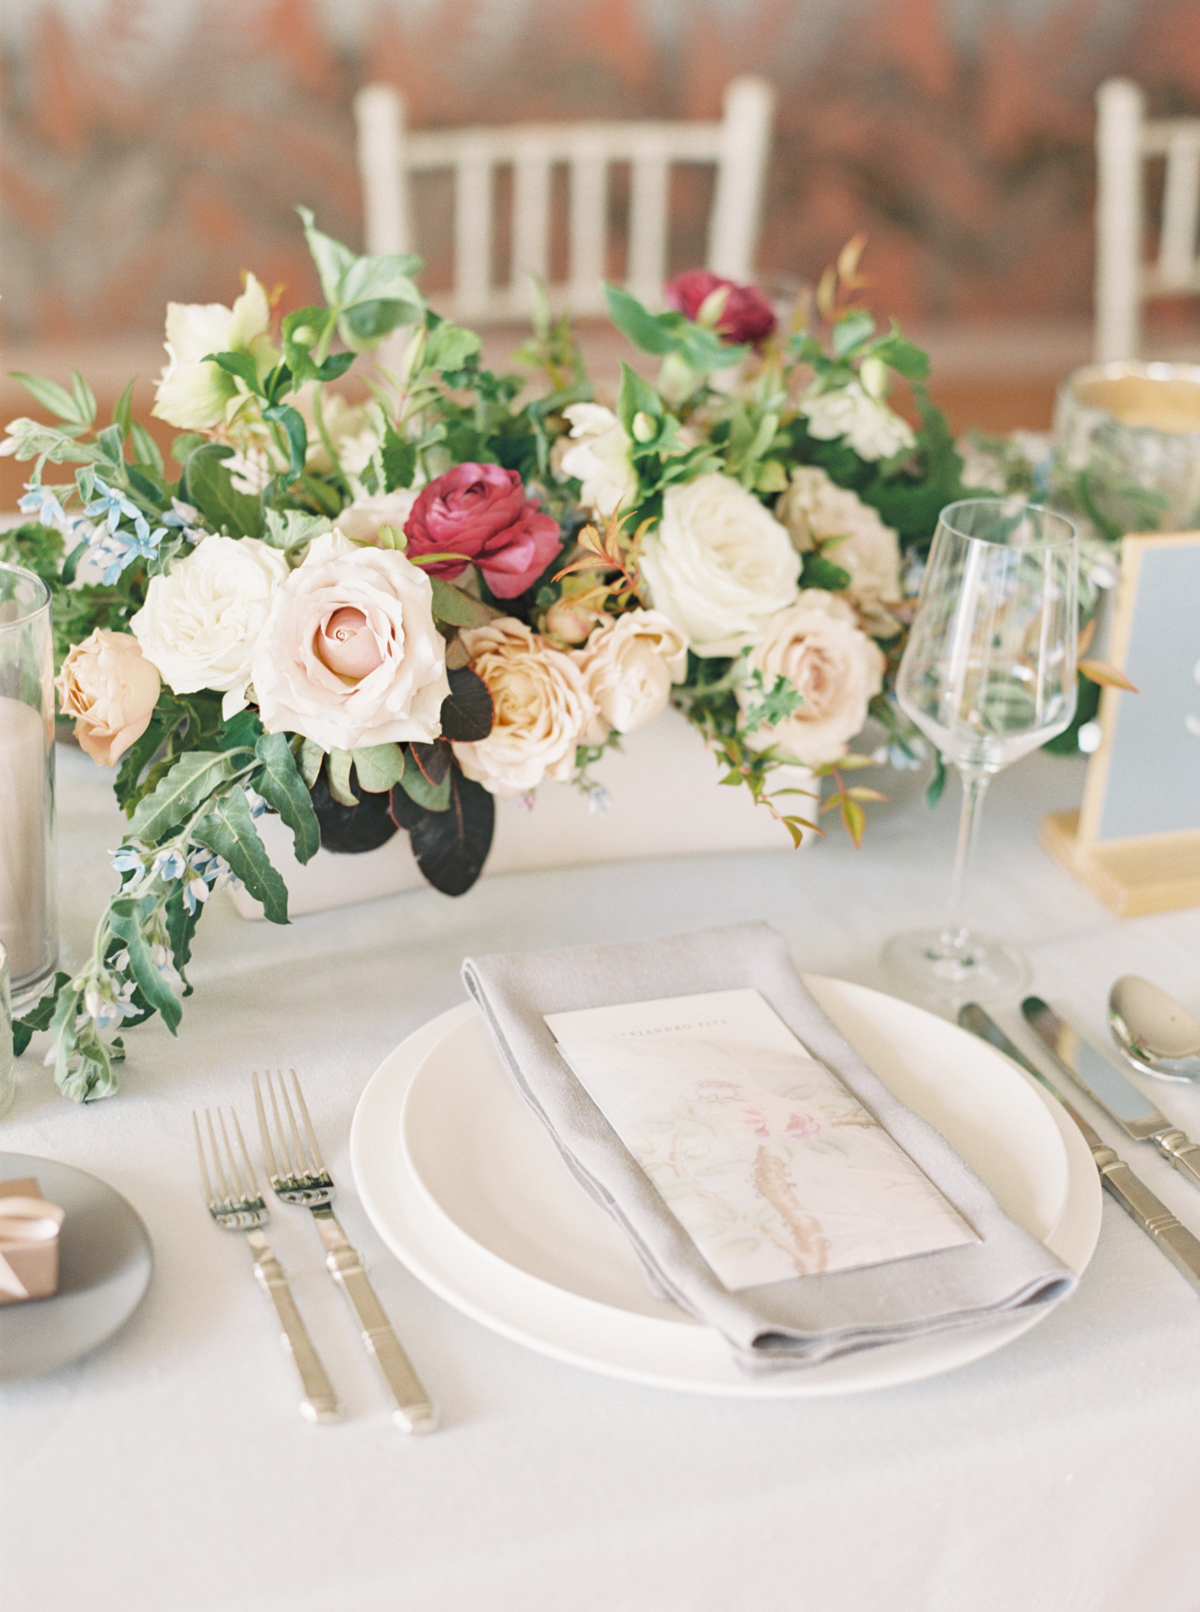 corey evan wedding neutral place setting with floral bouquet